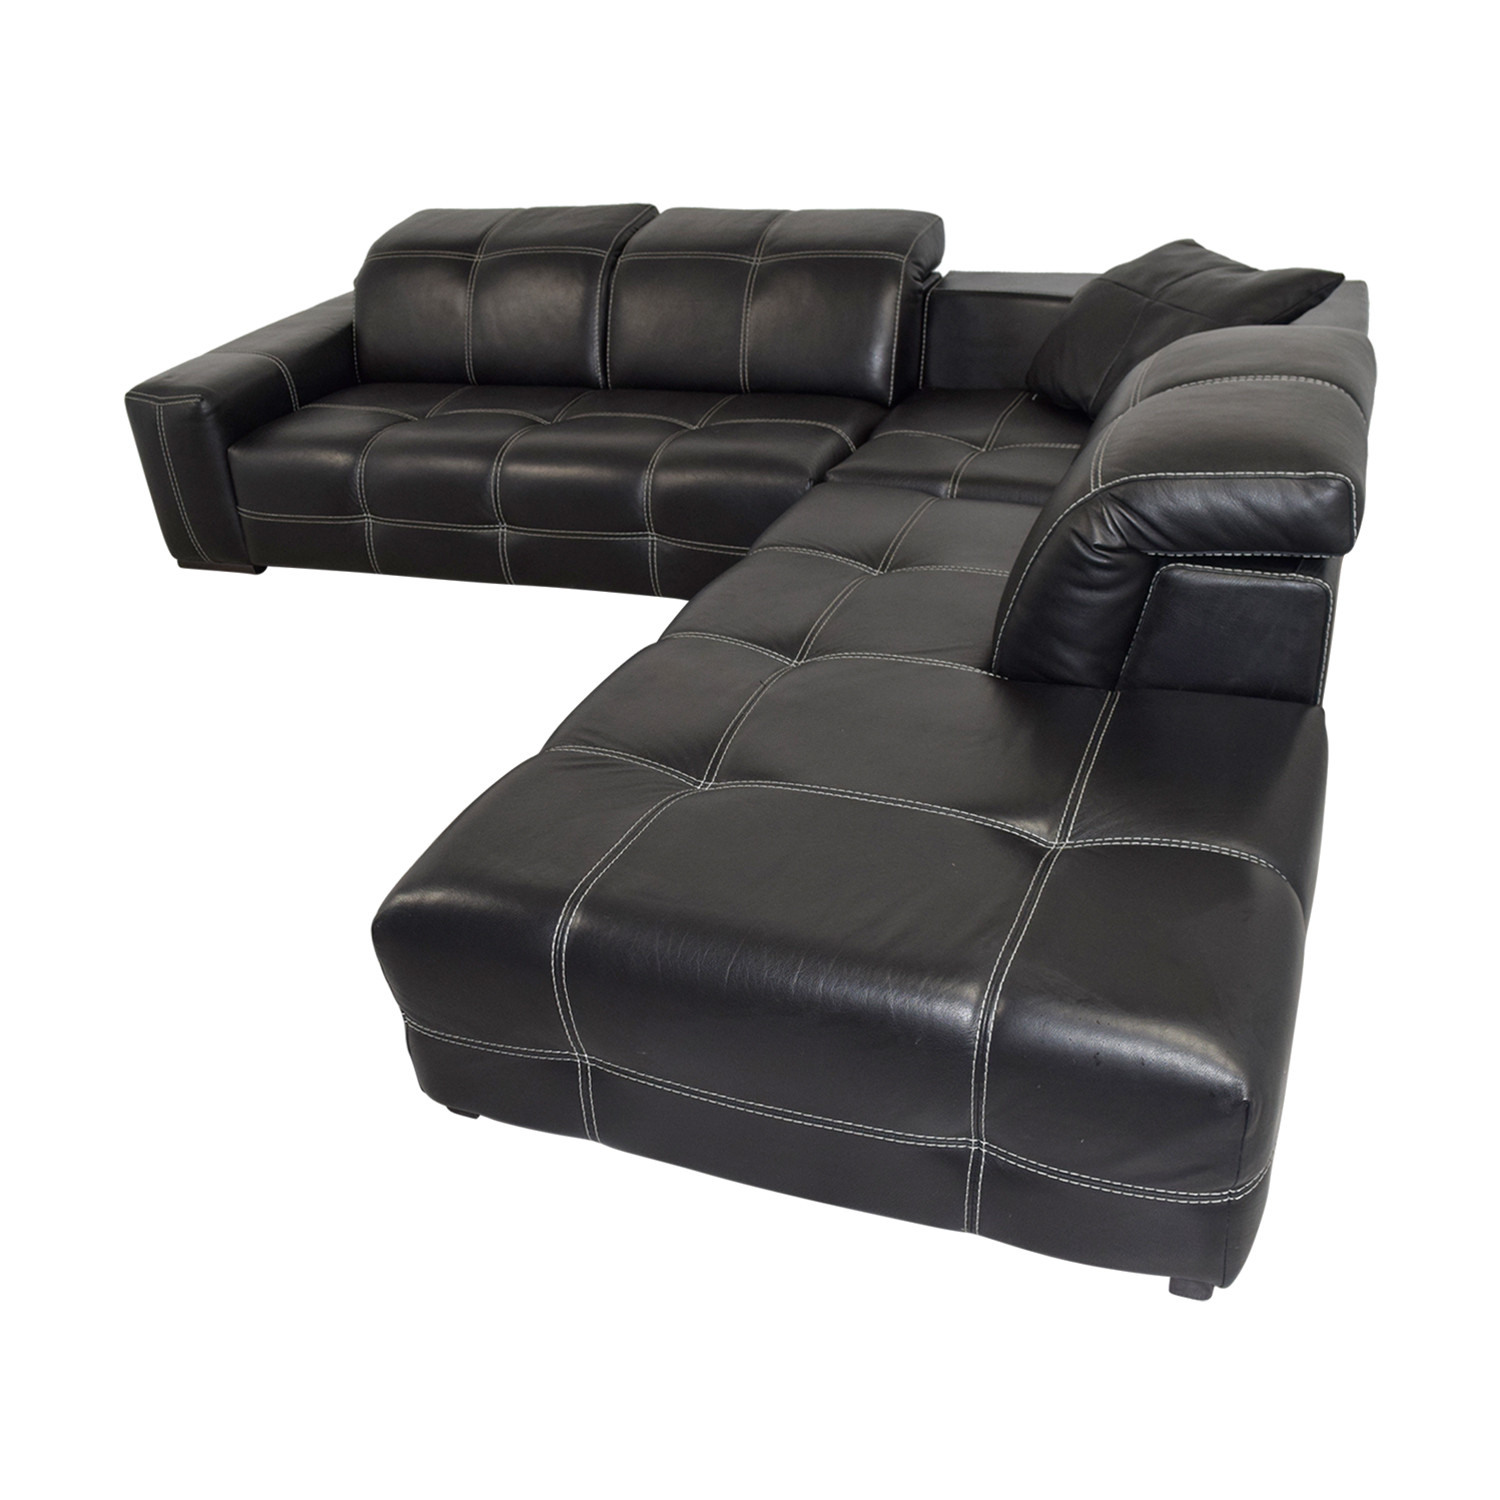 Image Result For Buy Black Leather Sofa Used